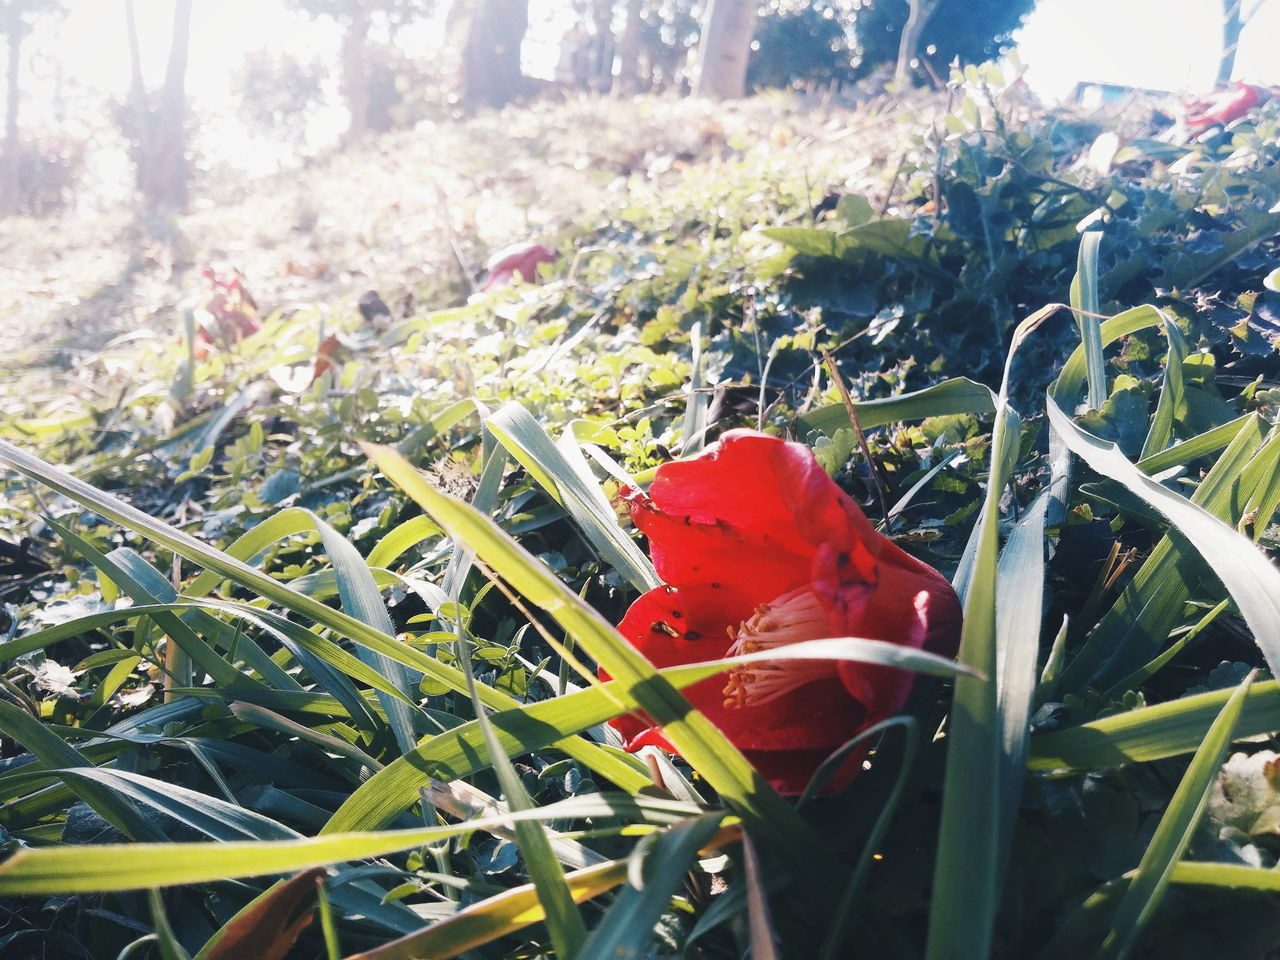 Red camellia laid carefully on the grassy area Camellia Flower Grass Field Nature Fallen